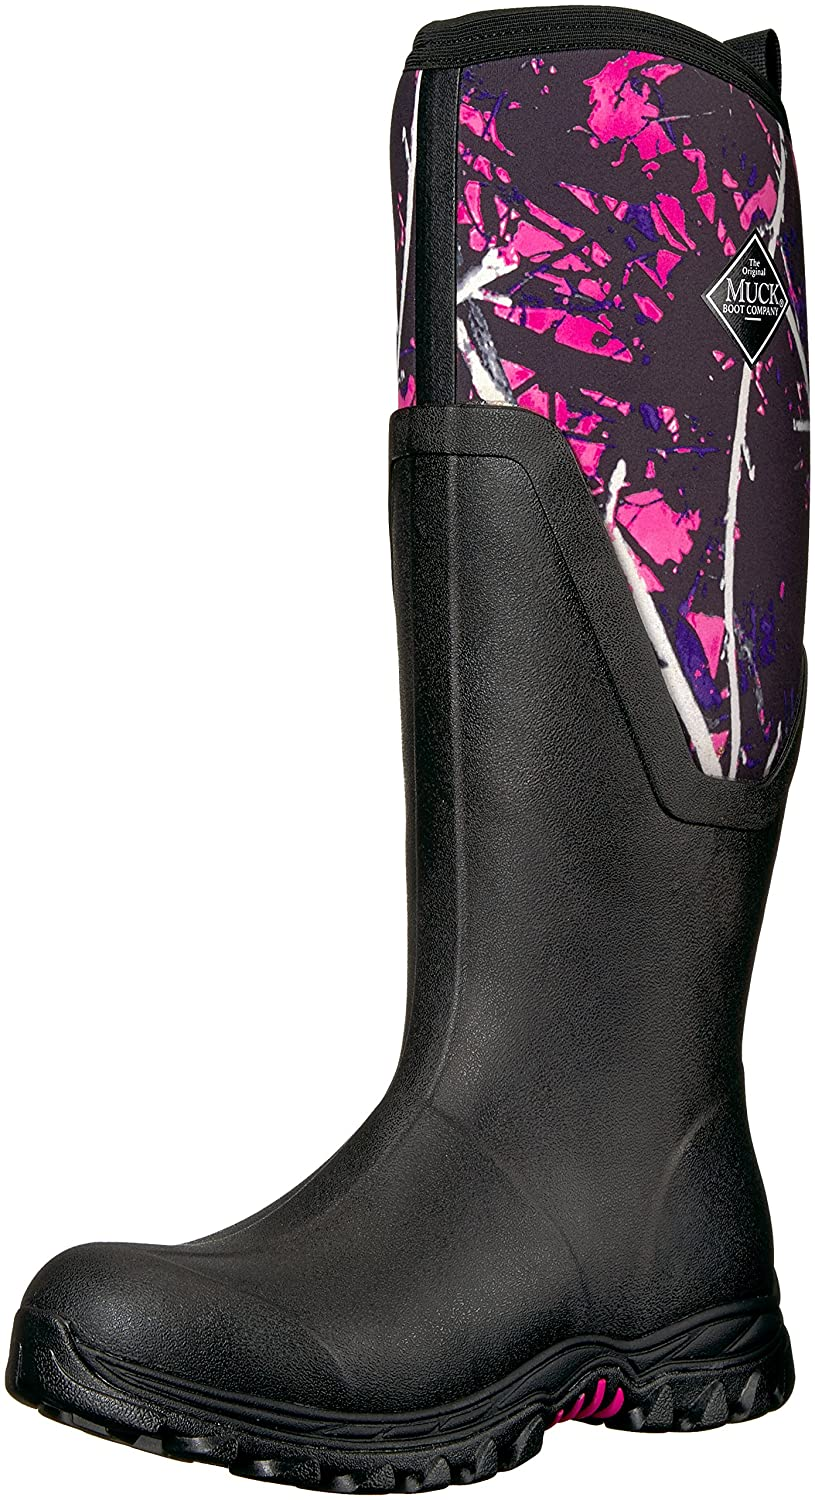 Muck Boot Women's Arctic Sport II Tall Snow B0714LVXJM 5 B(M) US|Black / Muddy Girl